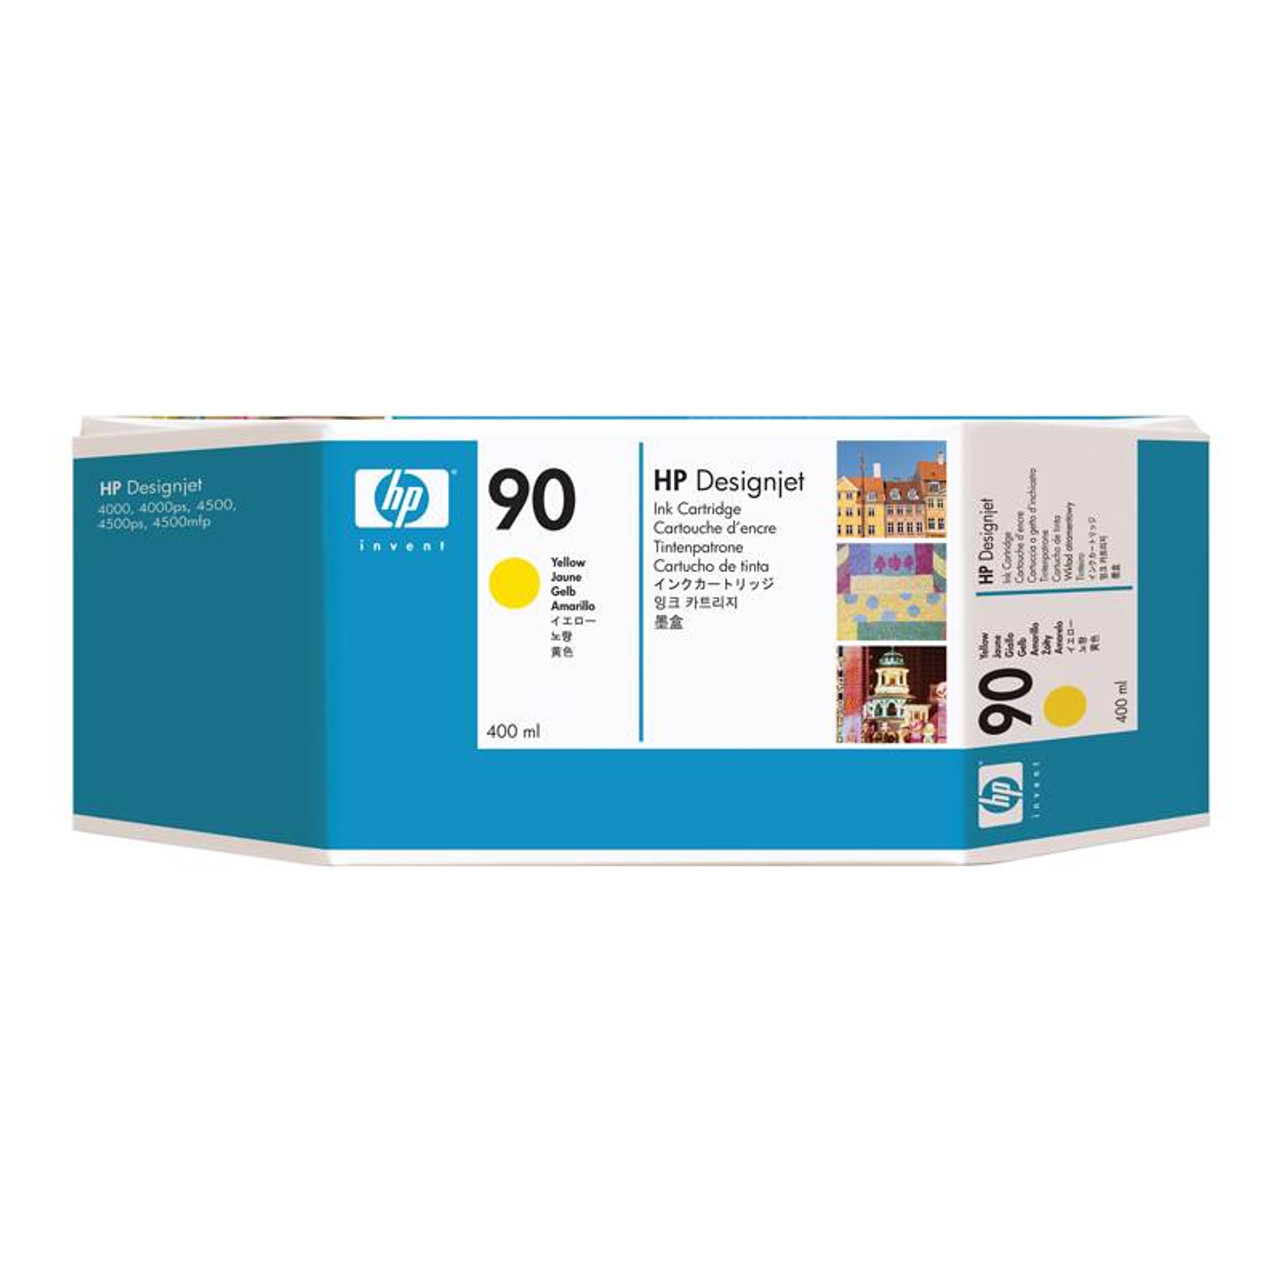 Image for HP 90 Yellow 400ml Ink Cartridge (C5065A) CX Computer Superstore